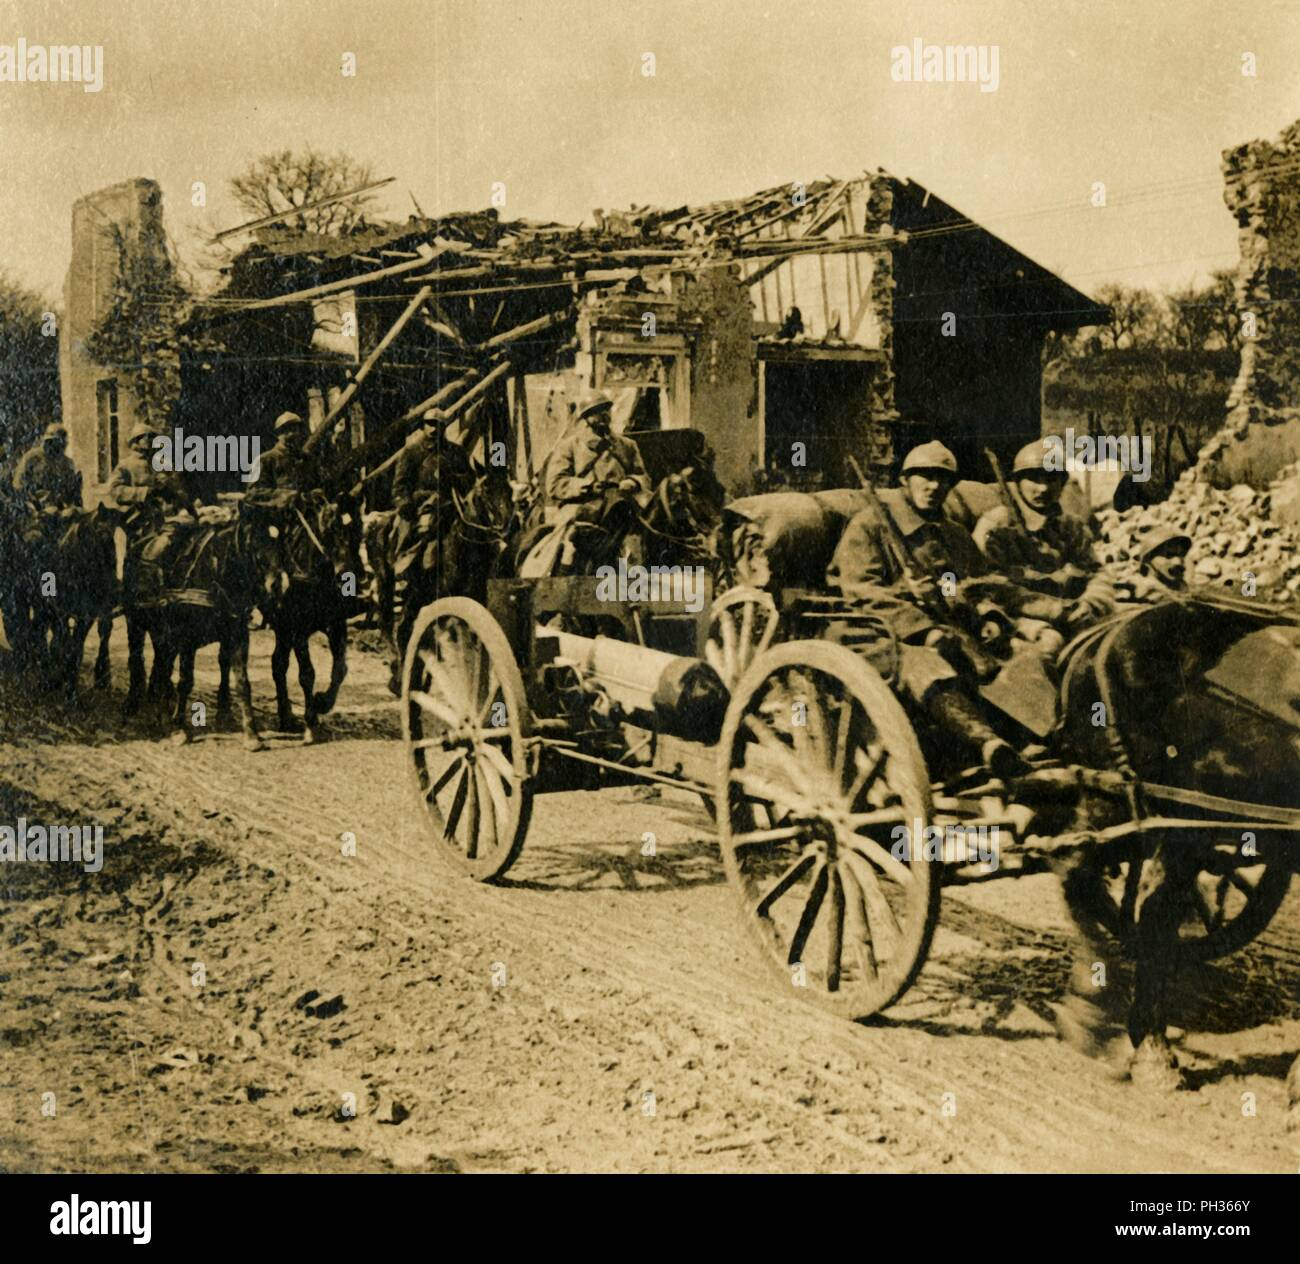 Artillery passing through Beauzée, northern France, c1914-c1918. Photograph from a series of glass plate stereoview images depicting scenes from World War I (1914-1918). - Stock Image